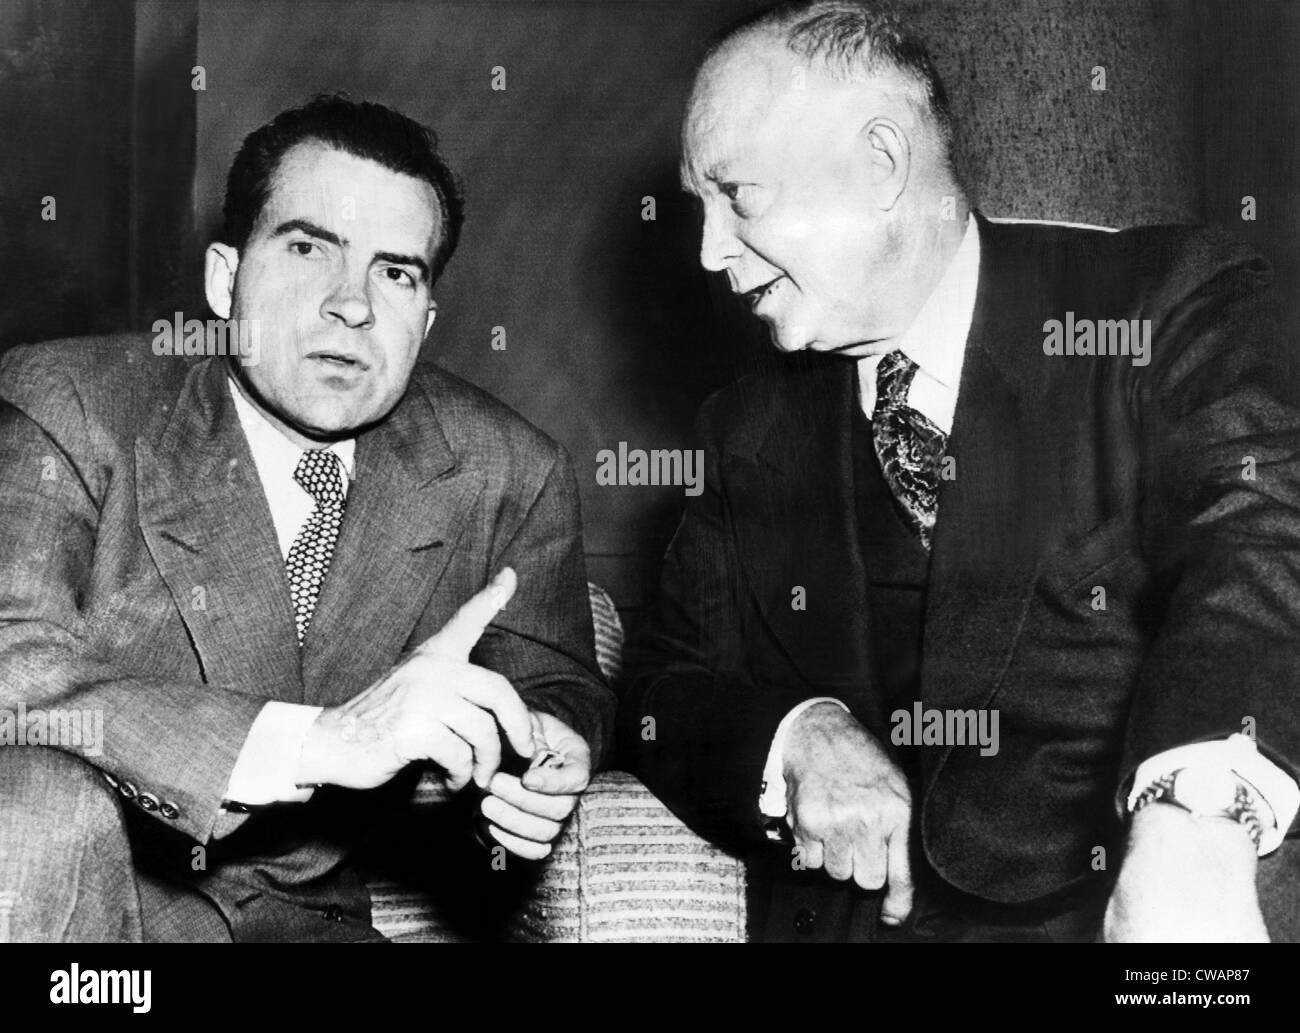 Future U.S. President Richard Nixon (then running for Vice President), and future President Dwight D. Eisenhower, - Stock Image